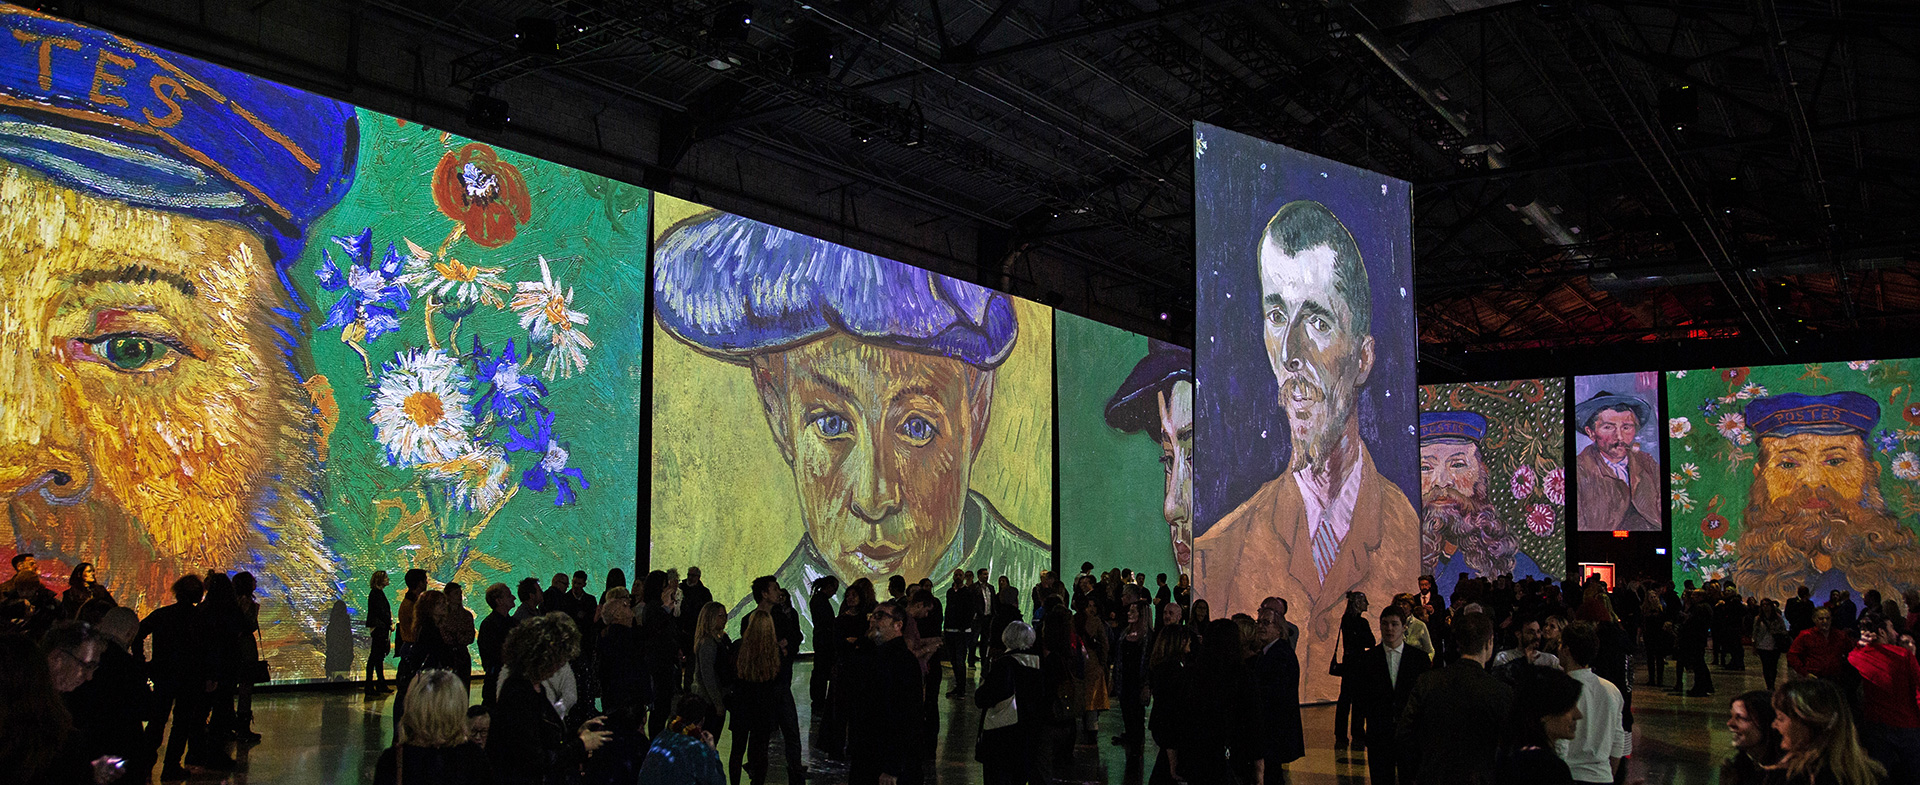 Van Gogh stands tall as an example of the artist who gave his specially-abled-mind an artistic blend | Imagine Van Gogh |STIRworld